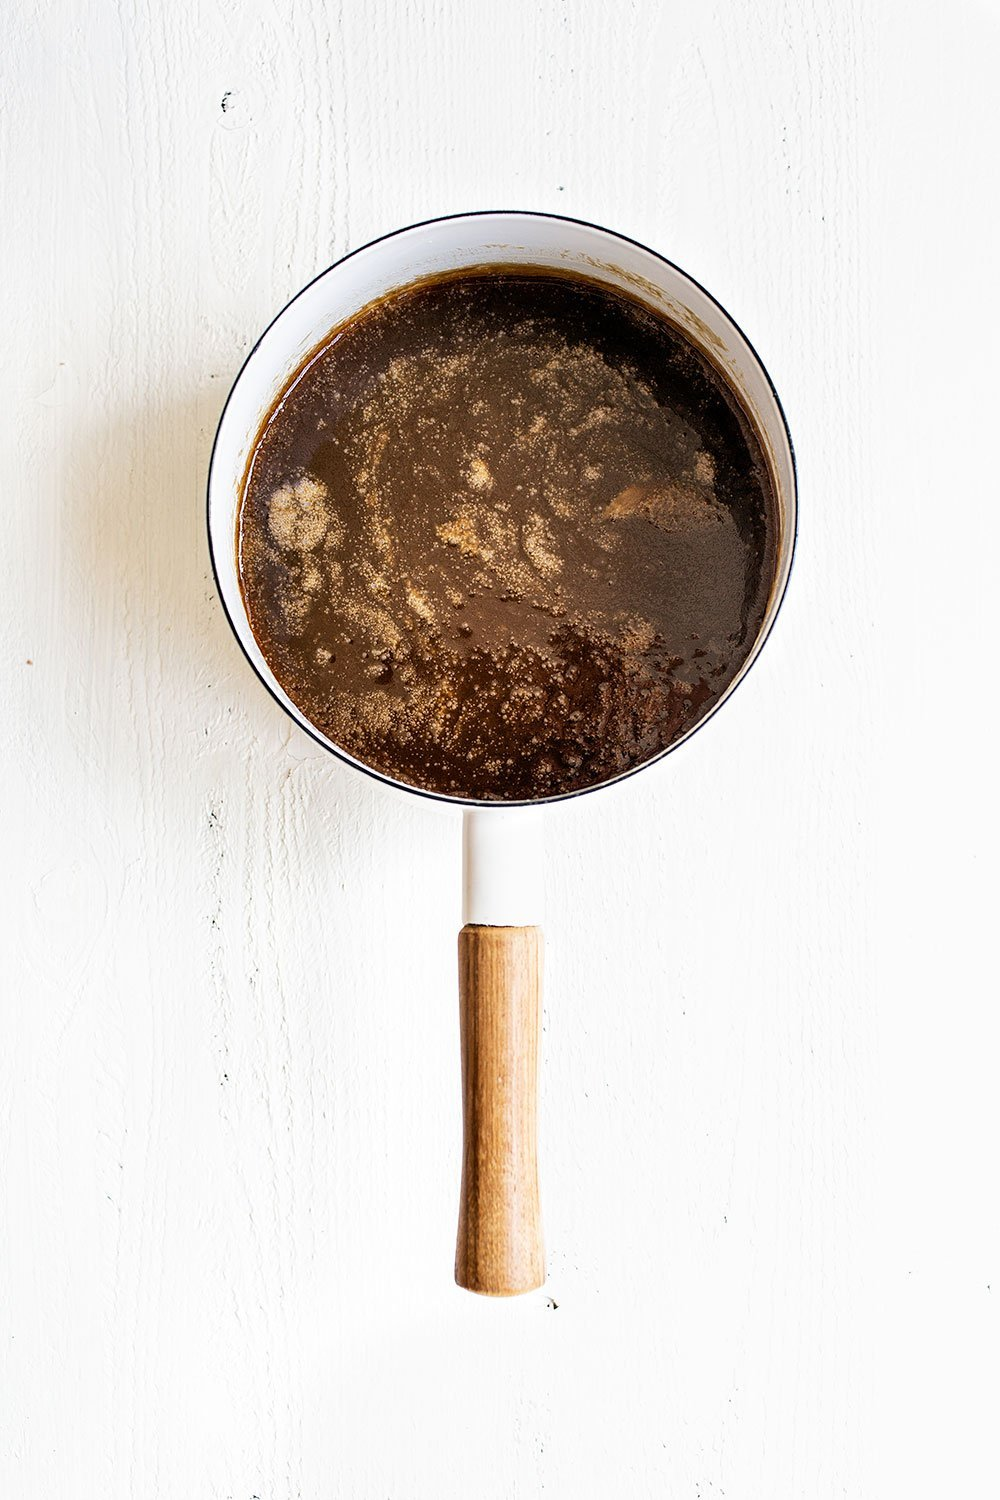 Hot Butterscotch sauce in saucepan